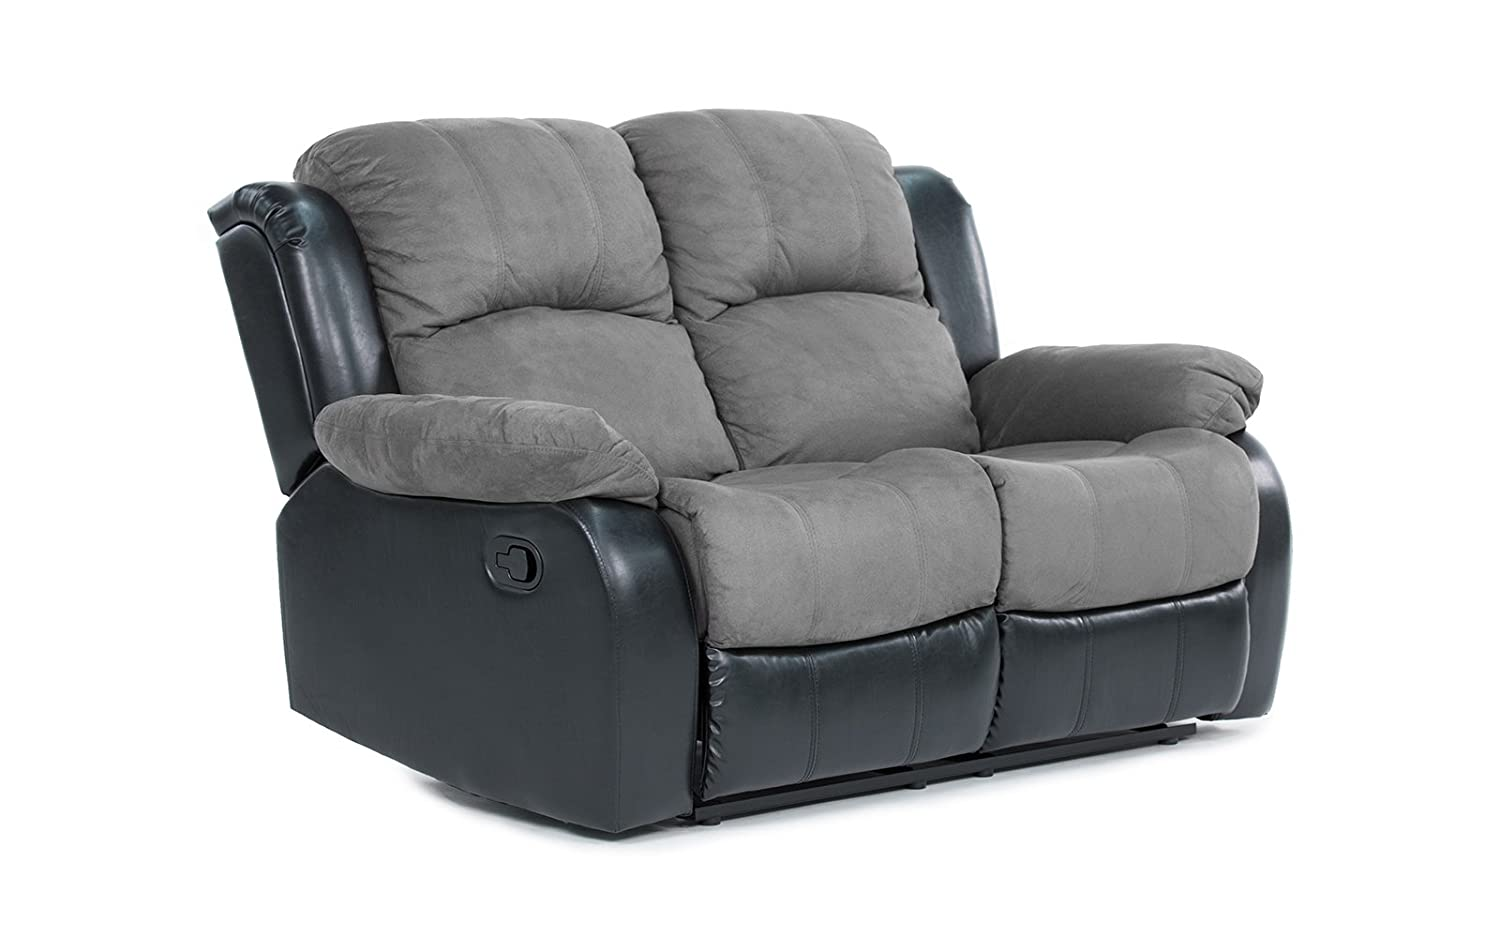 loveseat recliner, loveseat recliners, best loveseat recliner, best loveseat recliners, loveseat recliner review, loveseat recliners review, loveseat recliner reviews, loveseat recliners reviews, top loveseat recliners